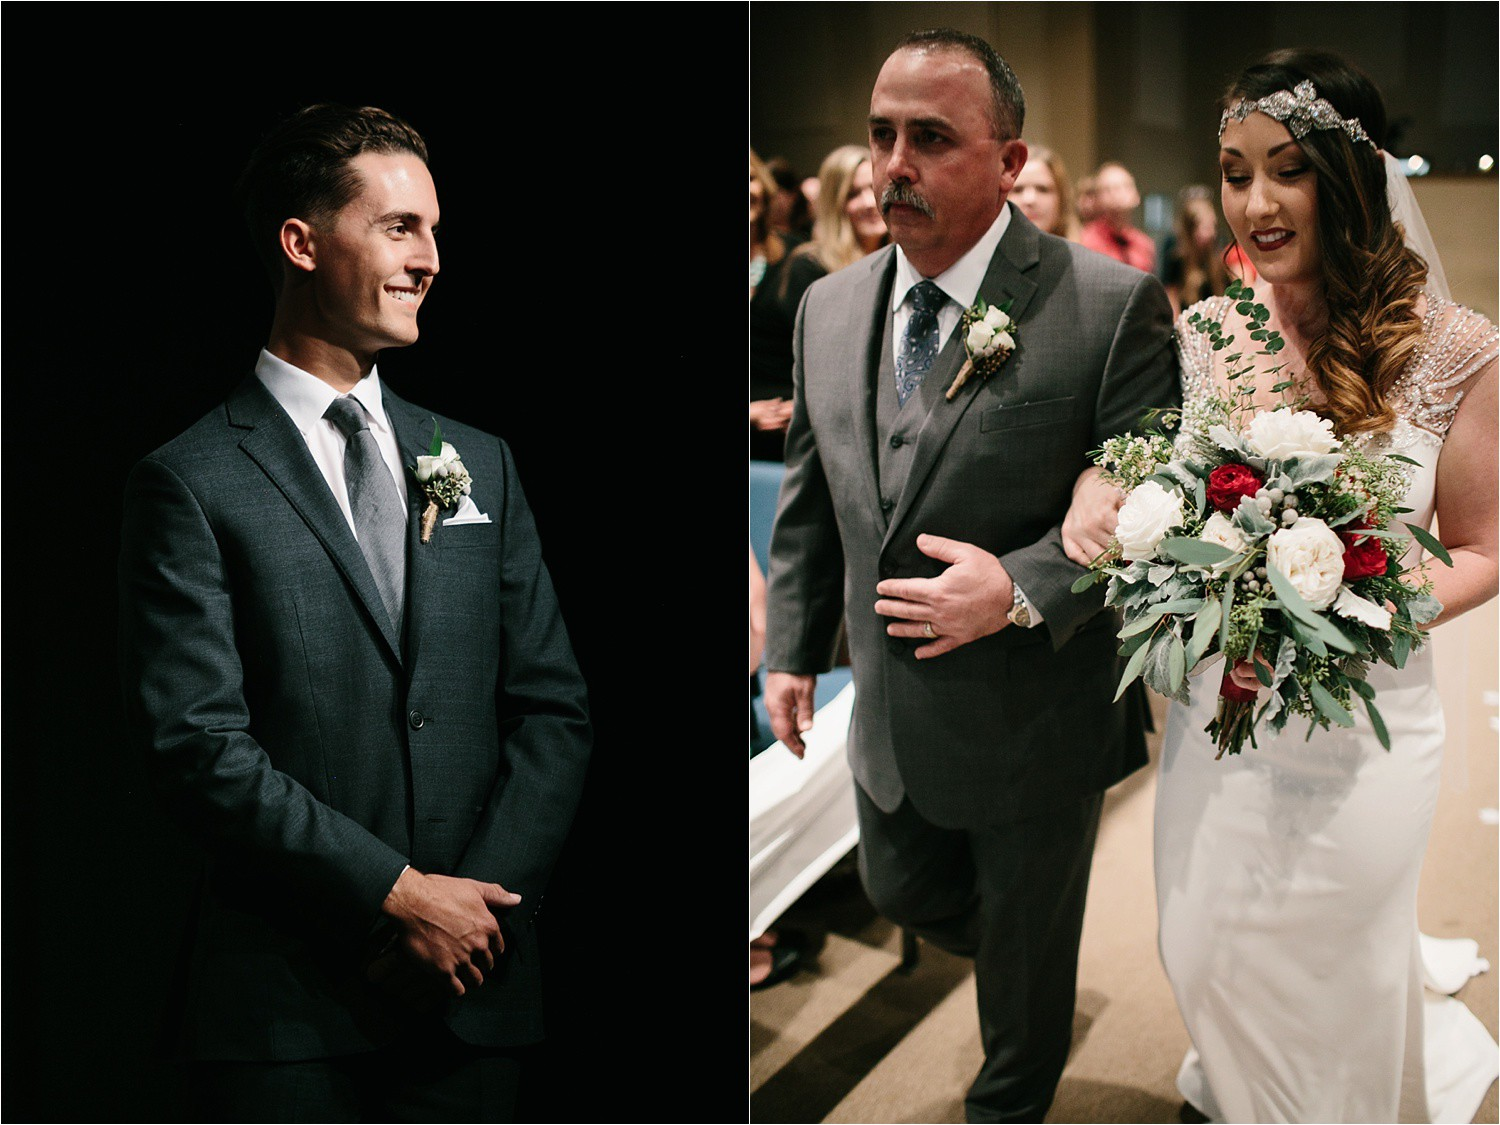 whittney-drew-__-an-intimate-wine-and-navy-wedding-in-an-industrial-venue-at-loft-123-in-paris-tx-by-north-texas-wedding-photographer-rachel-meagan-photography-_-053